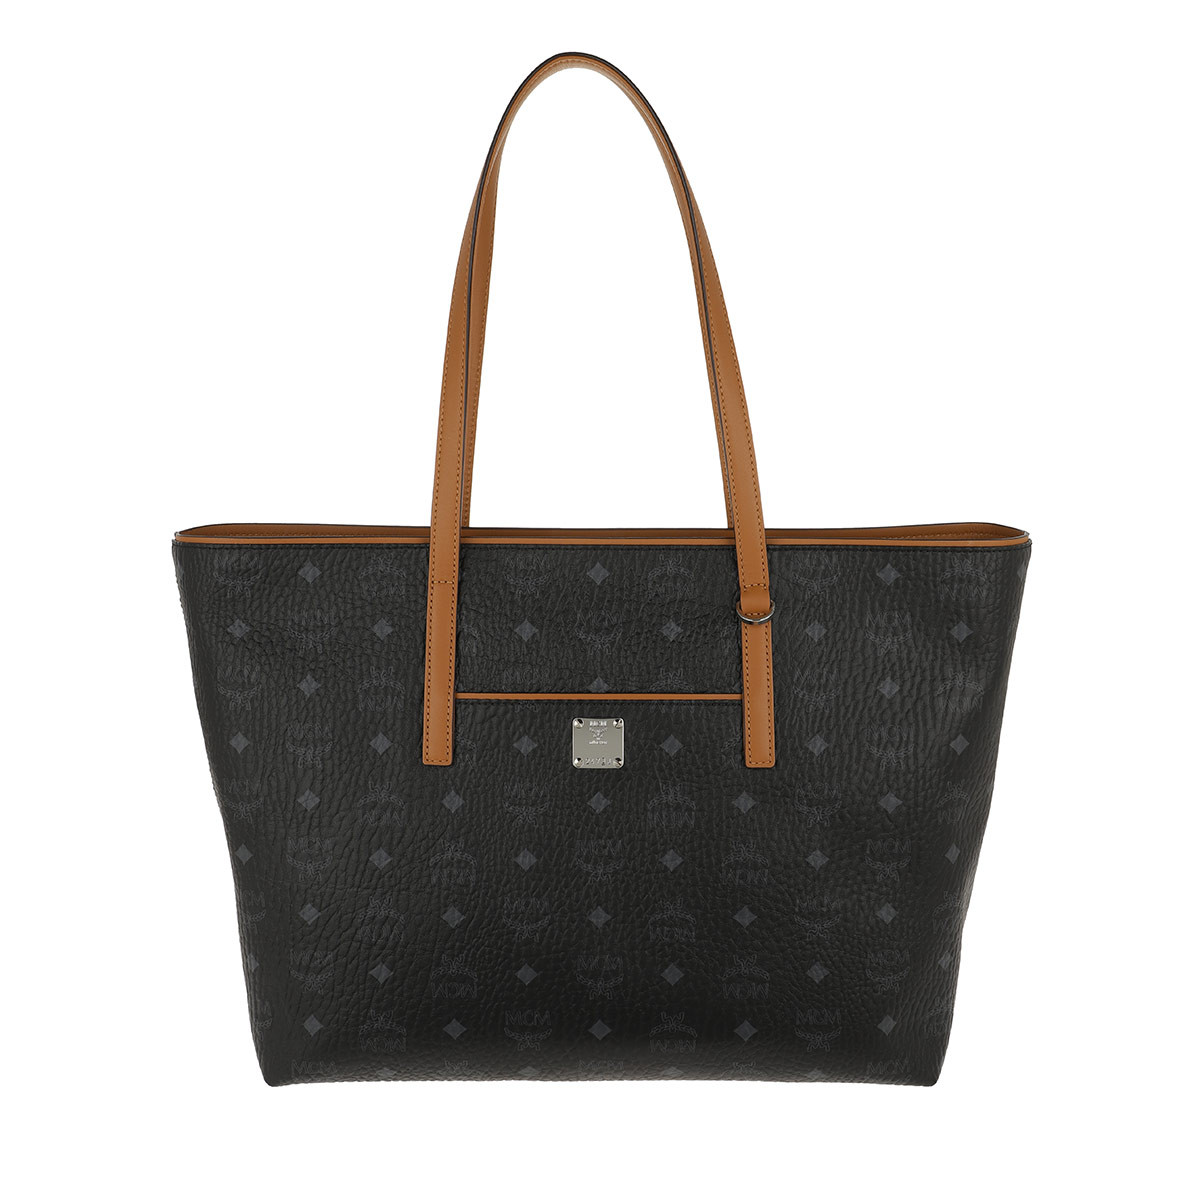 MCM Shopper - New Anya Shopper Medium Black - in schwarz - für Damen